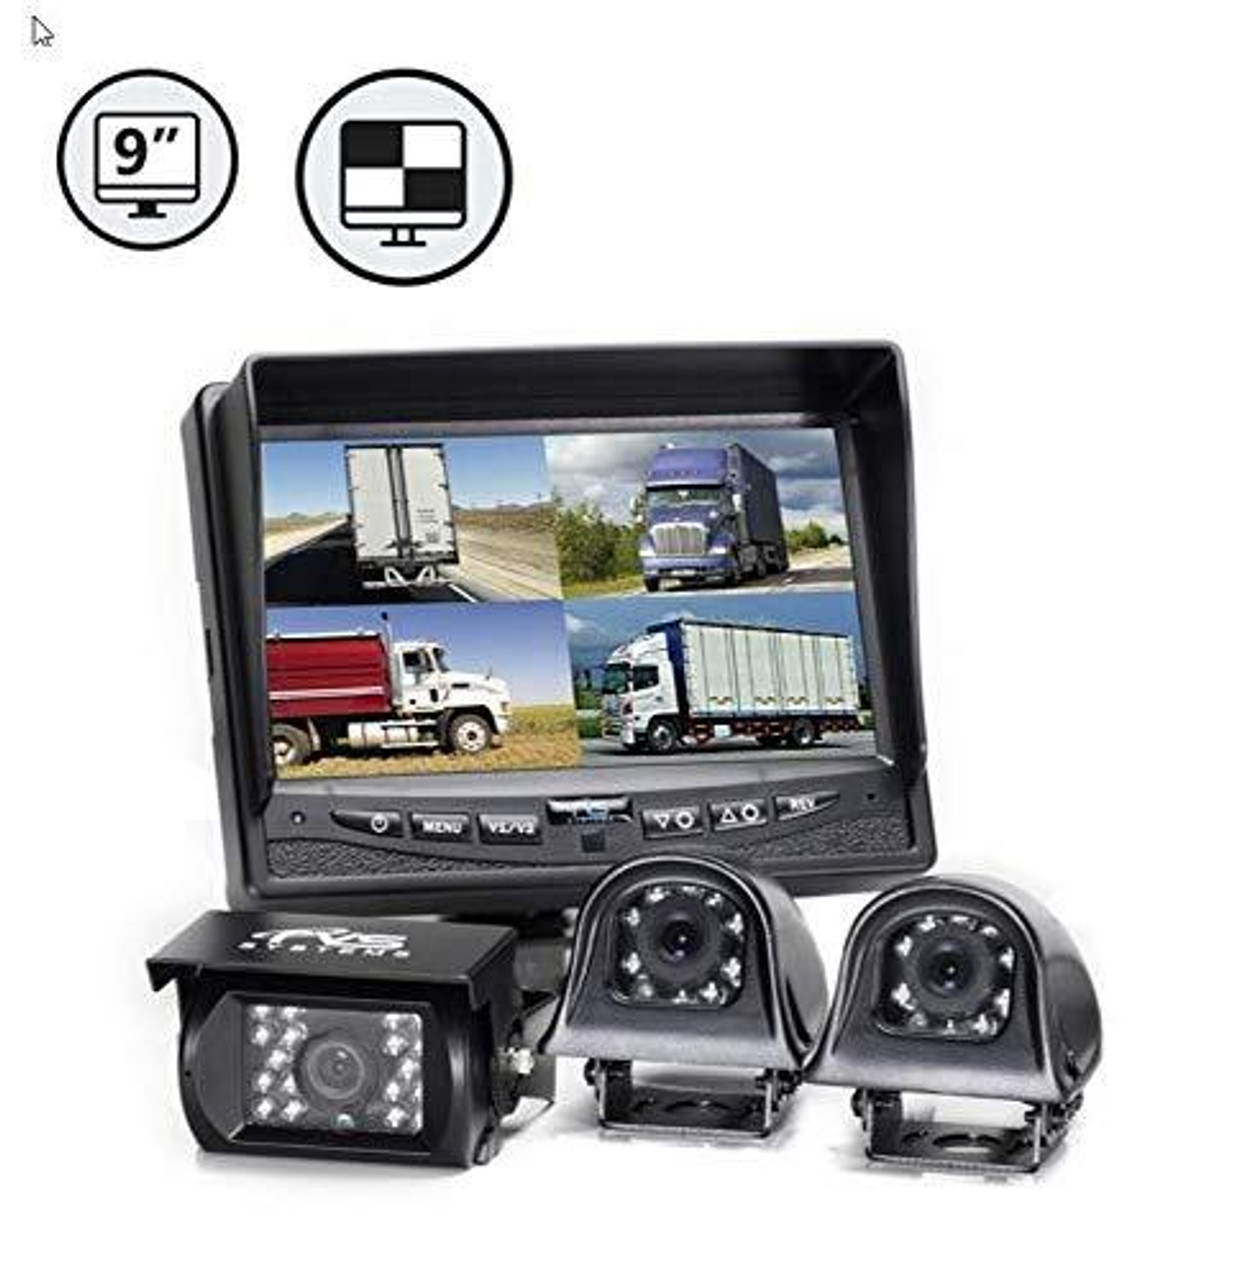 "9"" QV Display,1 x Backup Camera, Both Side Cameras, 1 x 66' Cable, 2 x 33' Cables"